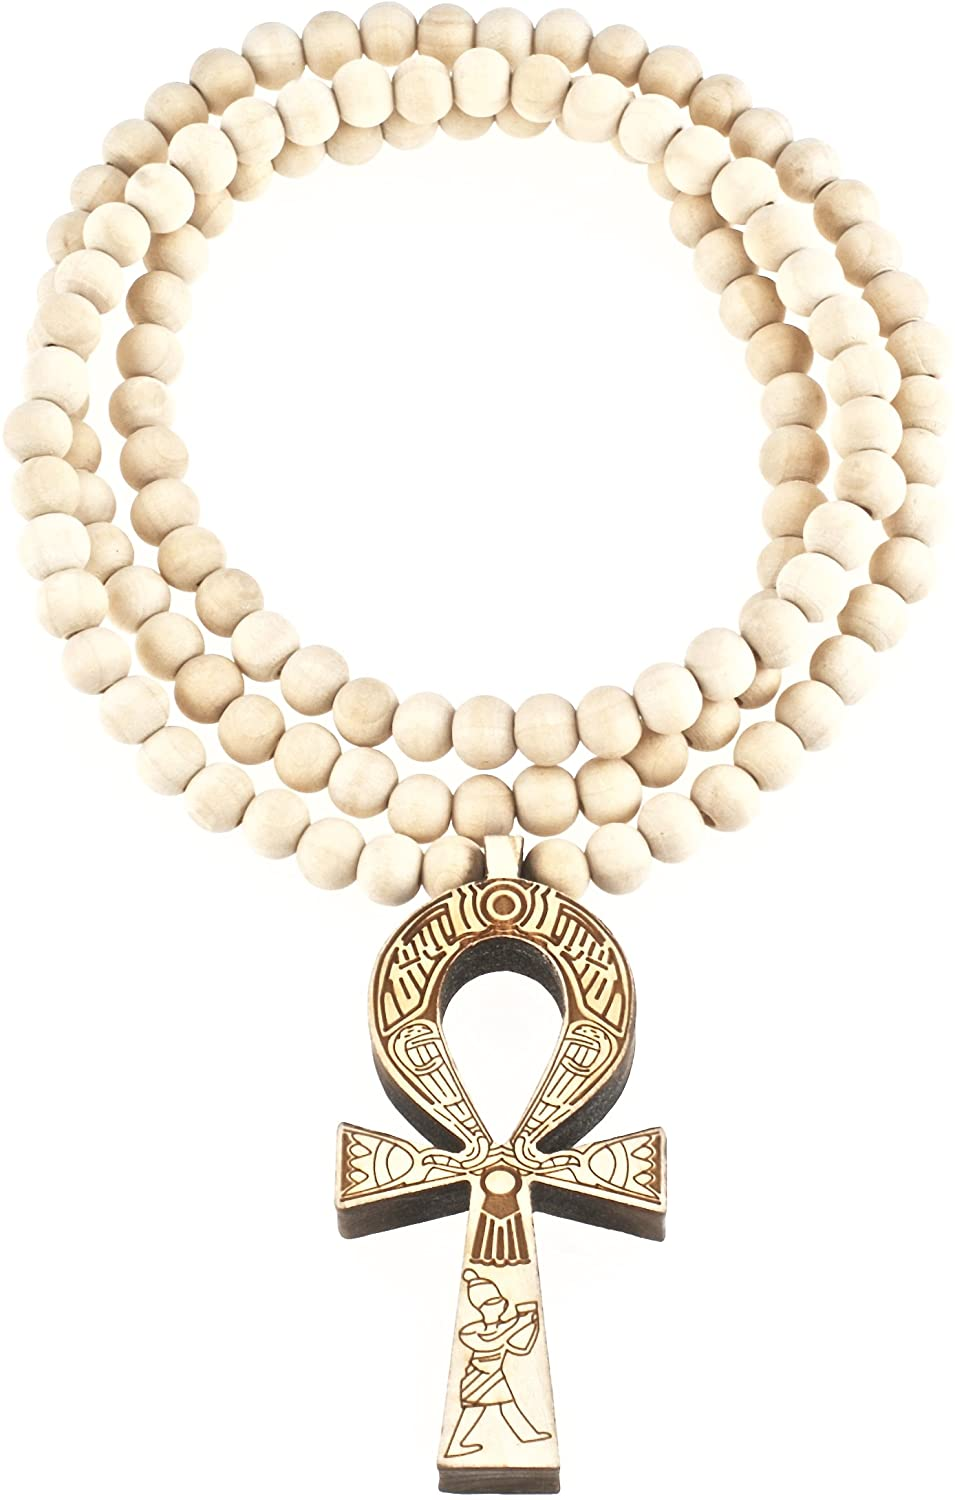 GWOOD ANKH Pendant Wood with 36 Inch Long Bead Necklace